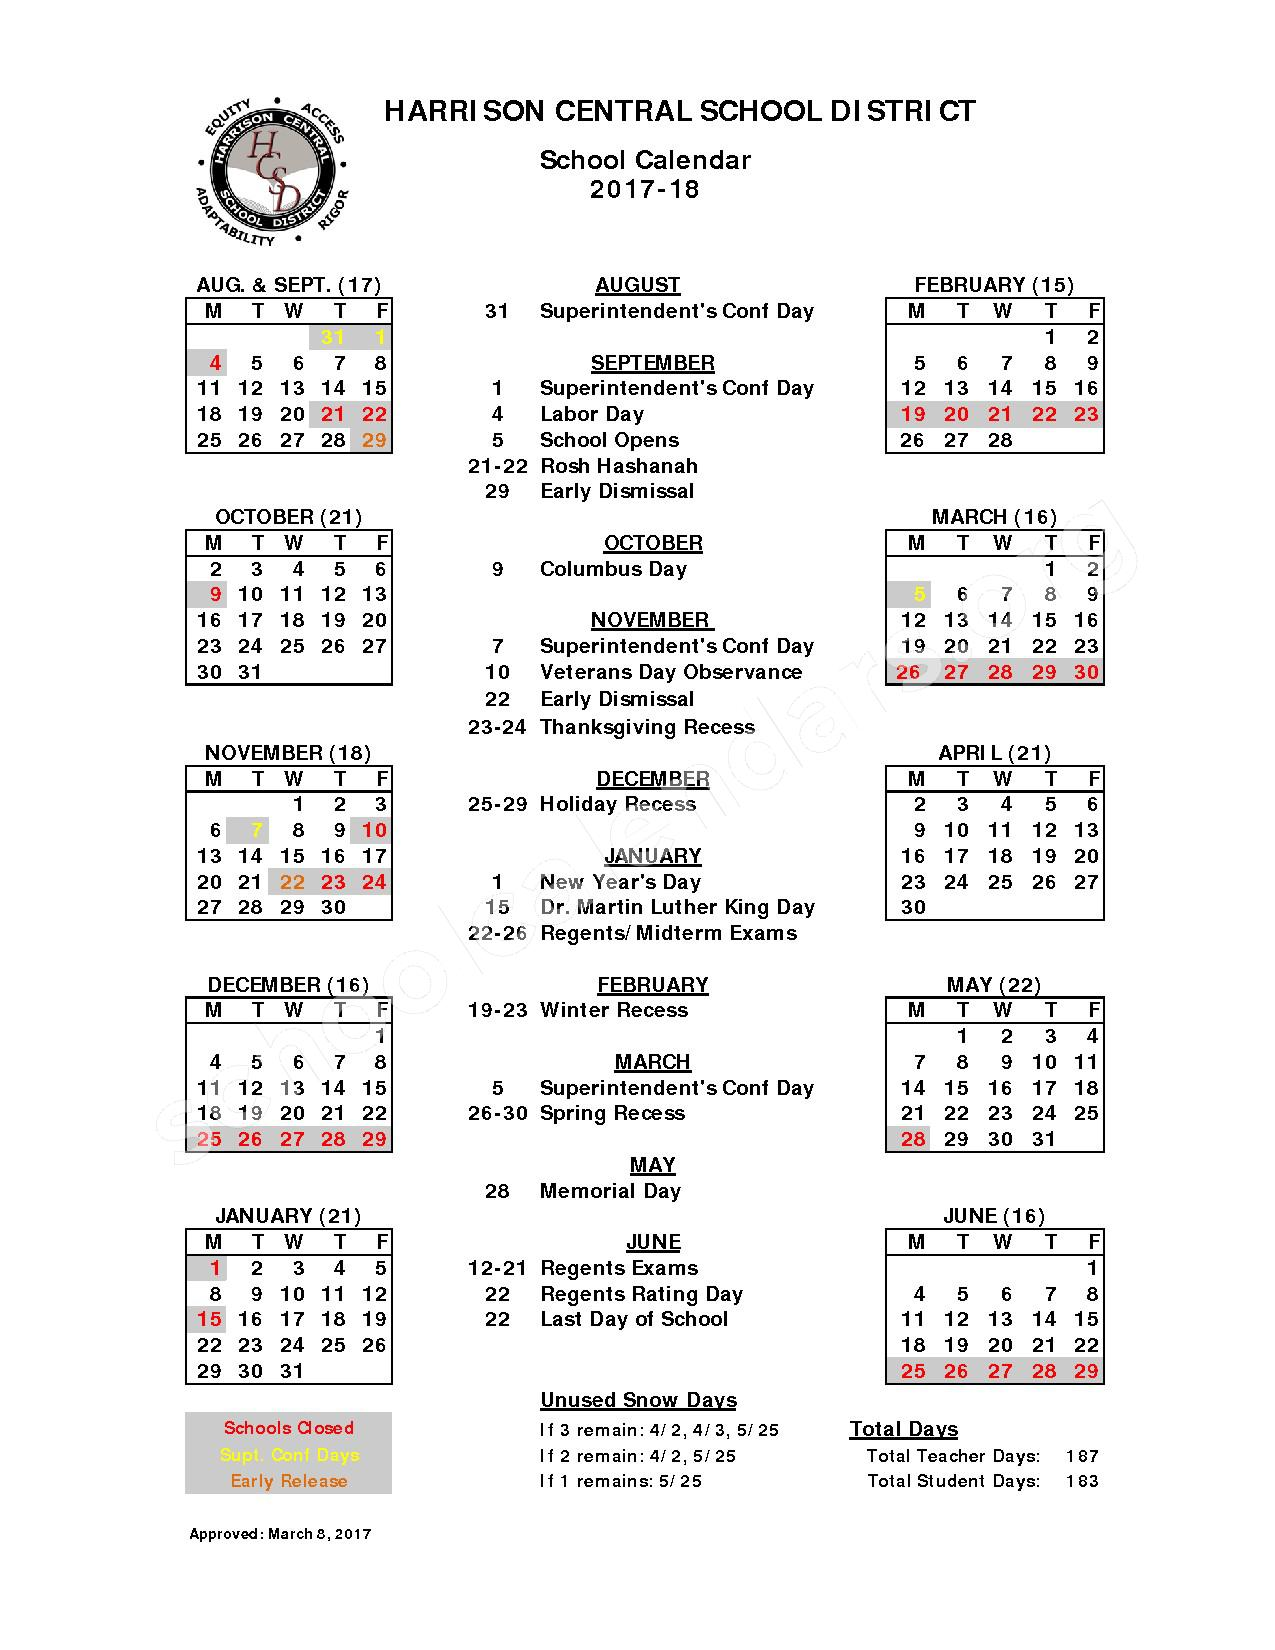 2017 - 2018 School Calendar – Harrison Central School District – page 1